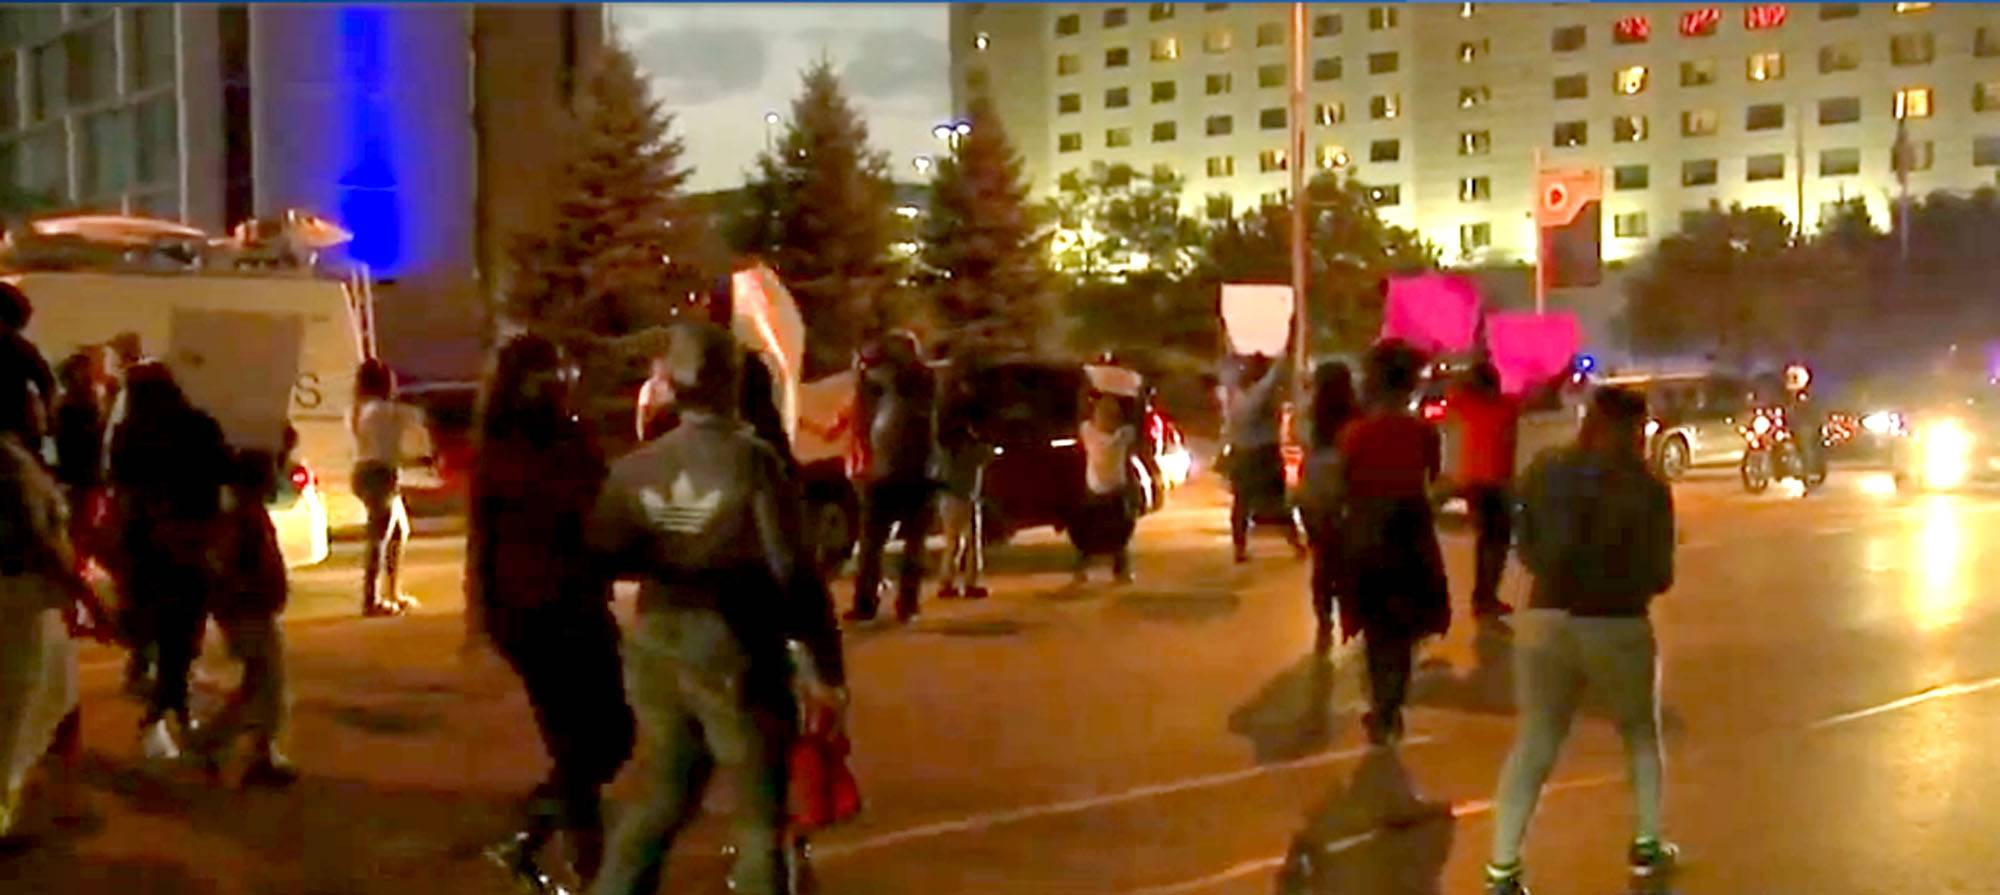 "COURTESY OF ABC 7Protesters gathered in Rosemont Wednesday night, blocking traffic as they demonstrated yelling ""shut it down"" in regards to the hotel where 19-year-old Kenneka Jenkins was discovered dead in a walk-in freezer over the weekend."